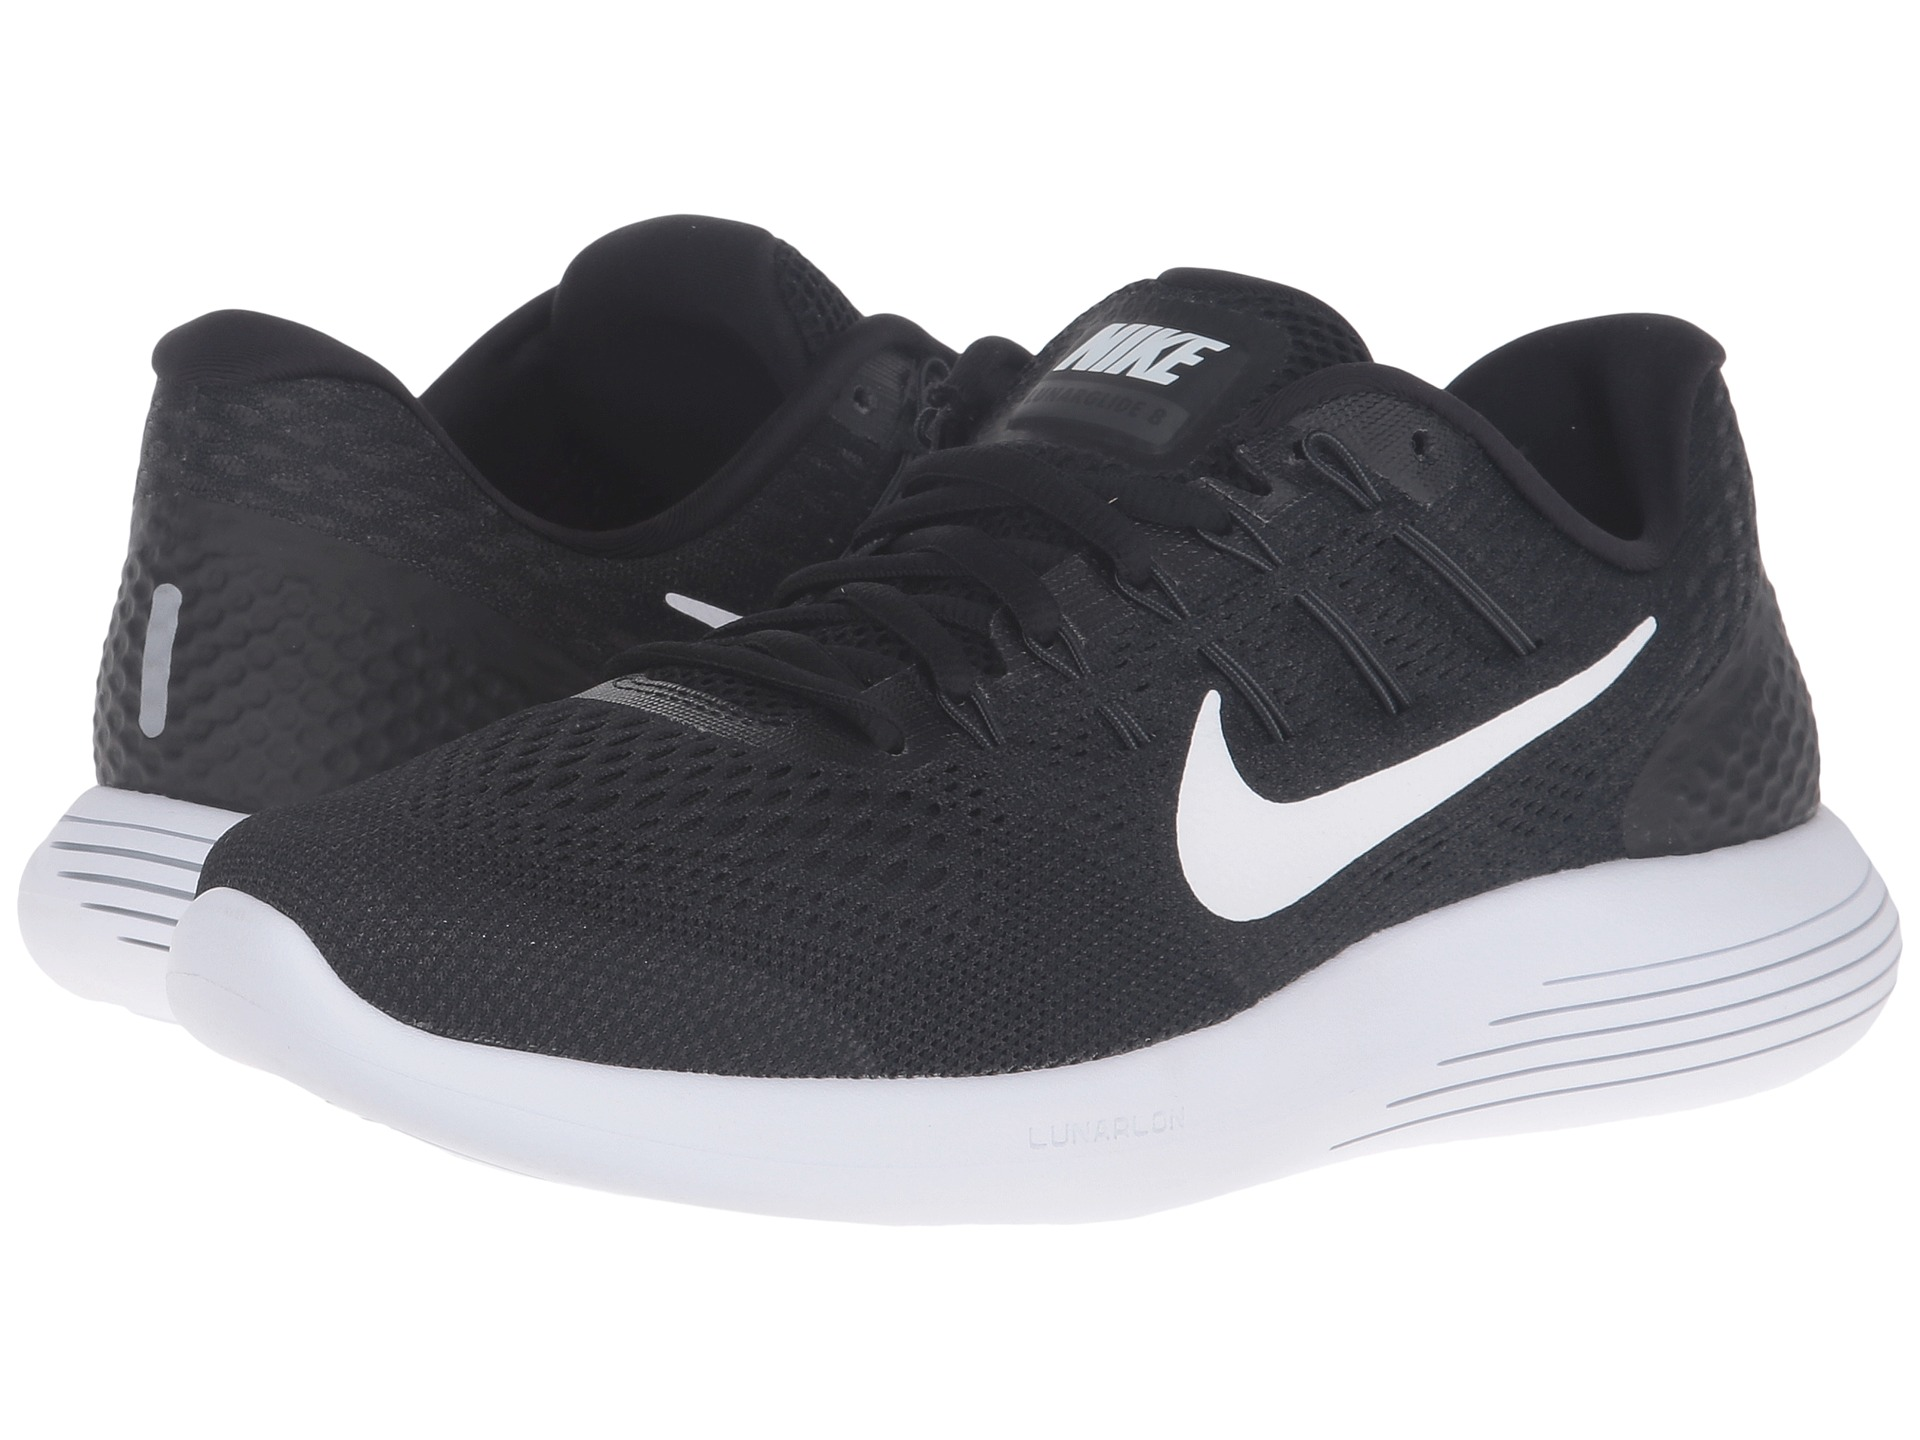 Nike Lunarglide 8 DICK'S Sporting Goods